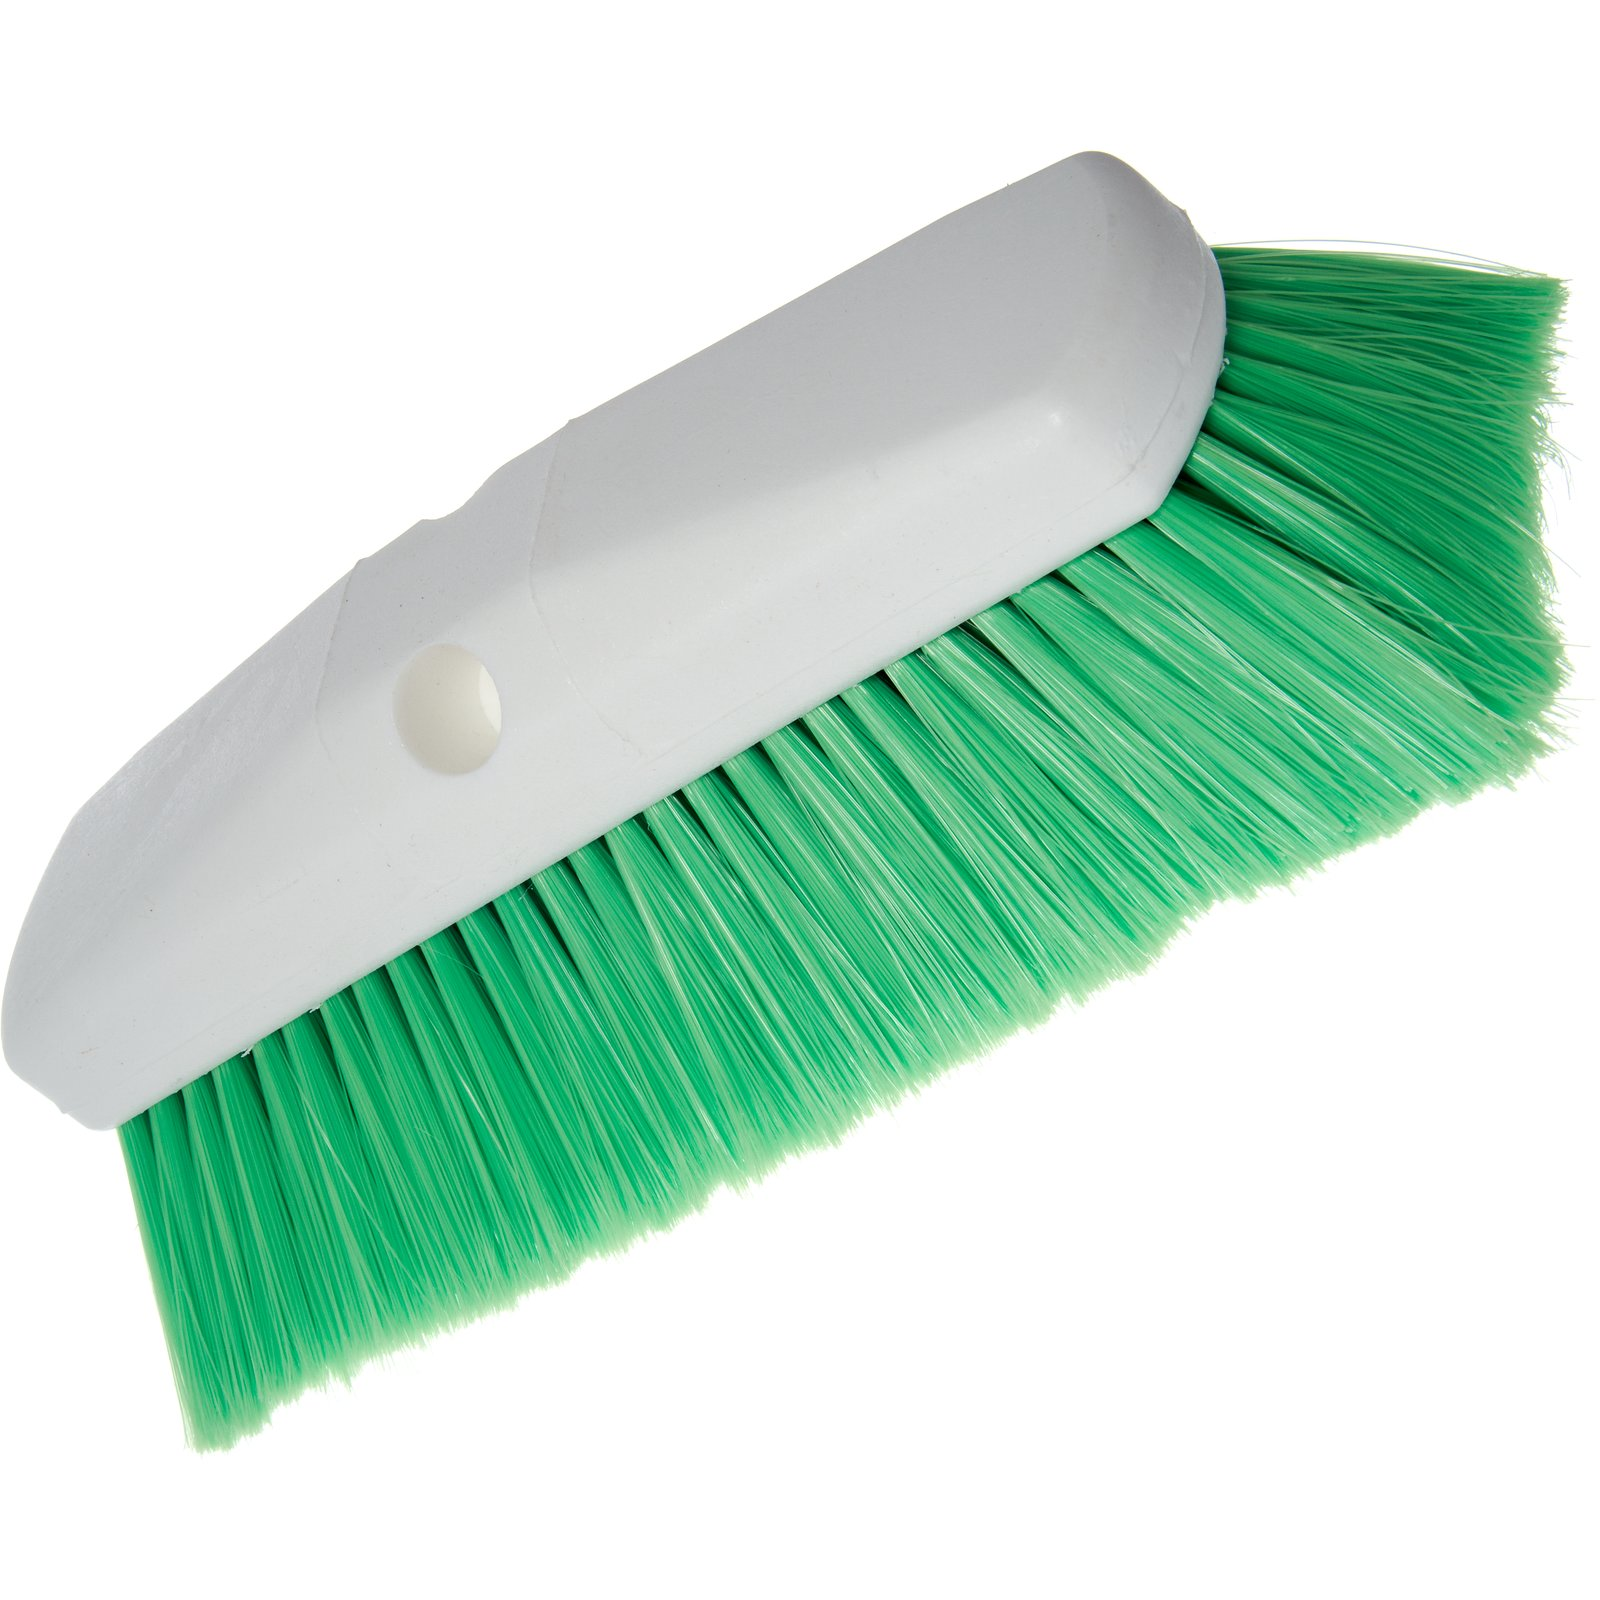 BRUSH WALL AND EQUIPMENT GREEN 10""